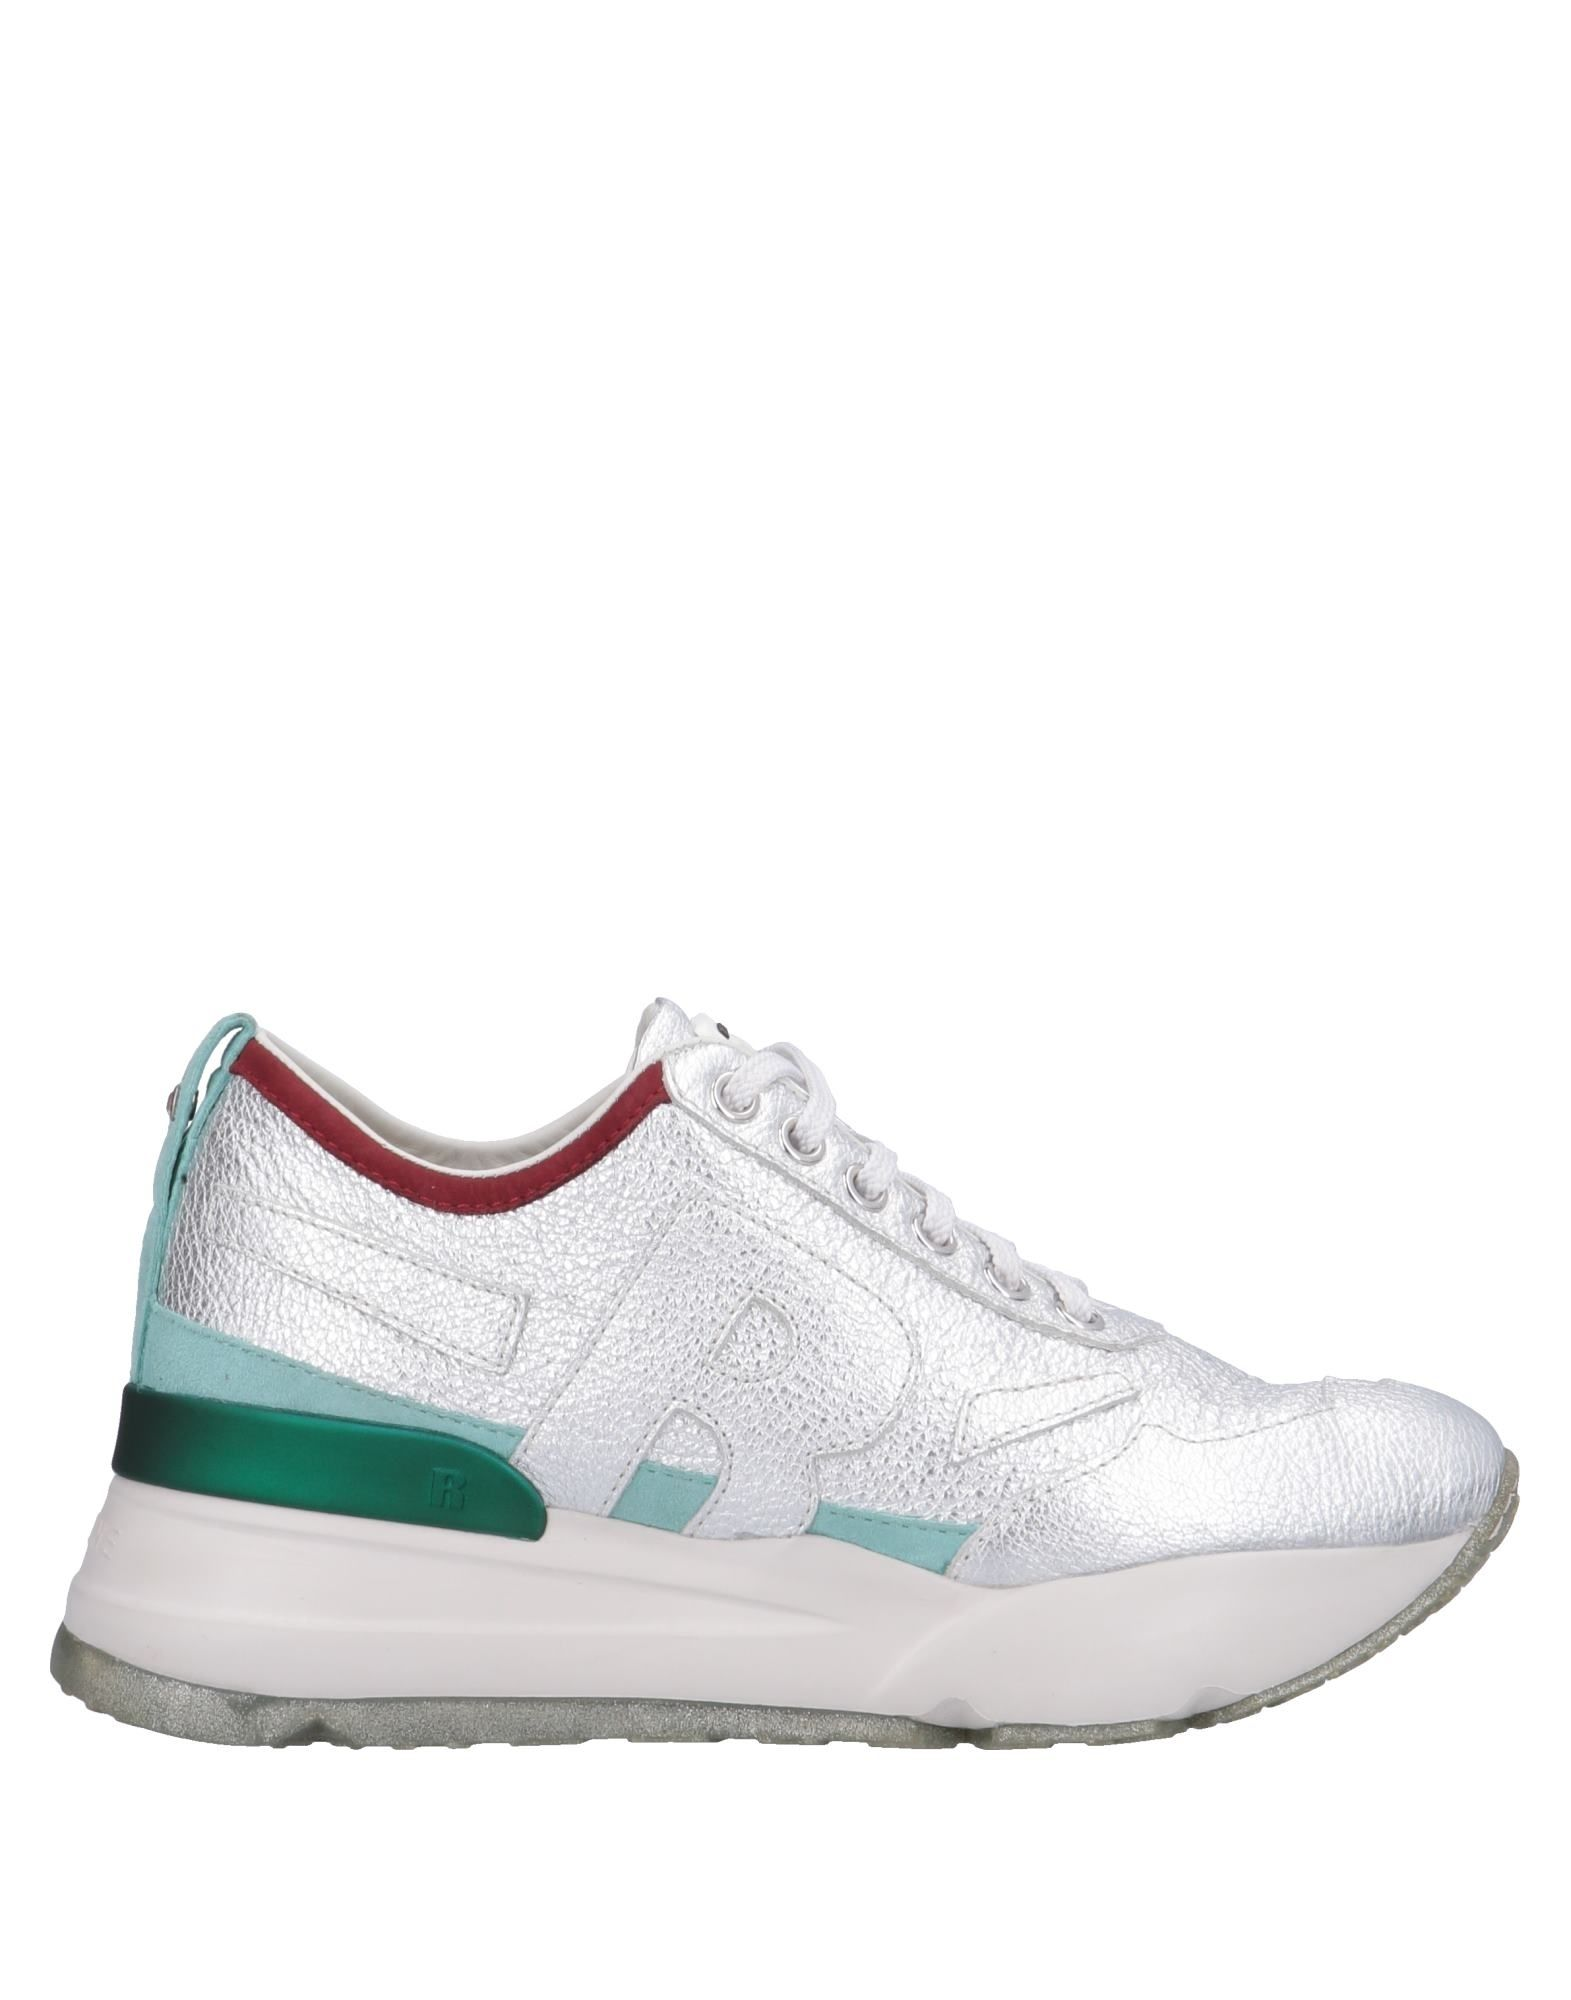 Ruco Line Sneakers - Women Ruco  Line Sneakers online on  Ruco United Kingdom - 11559510CQ 85452d